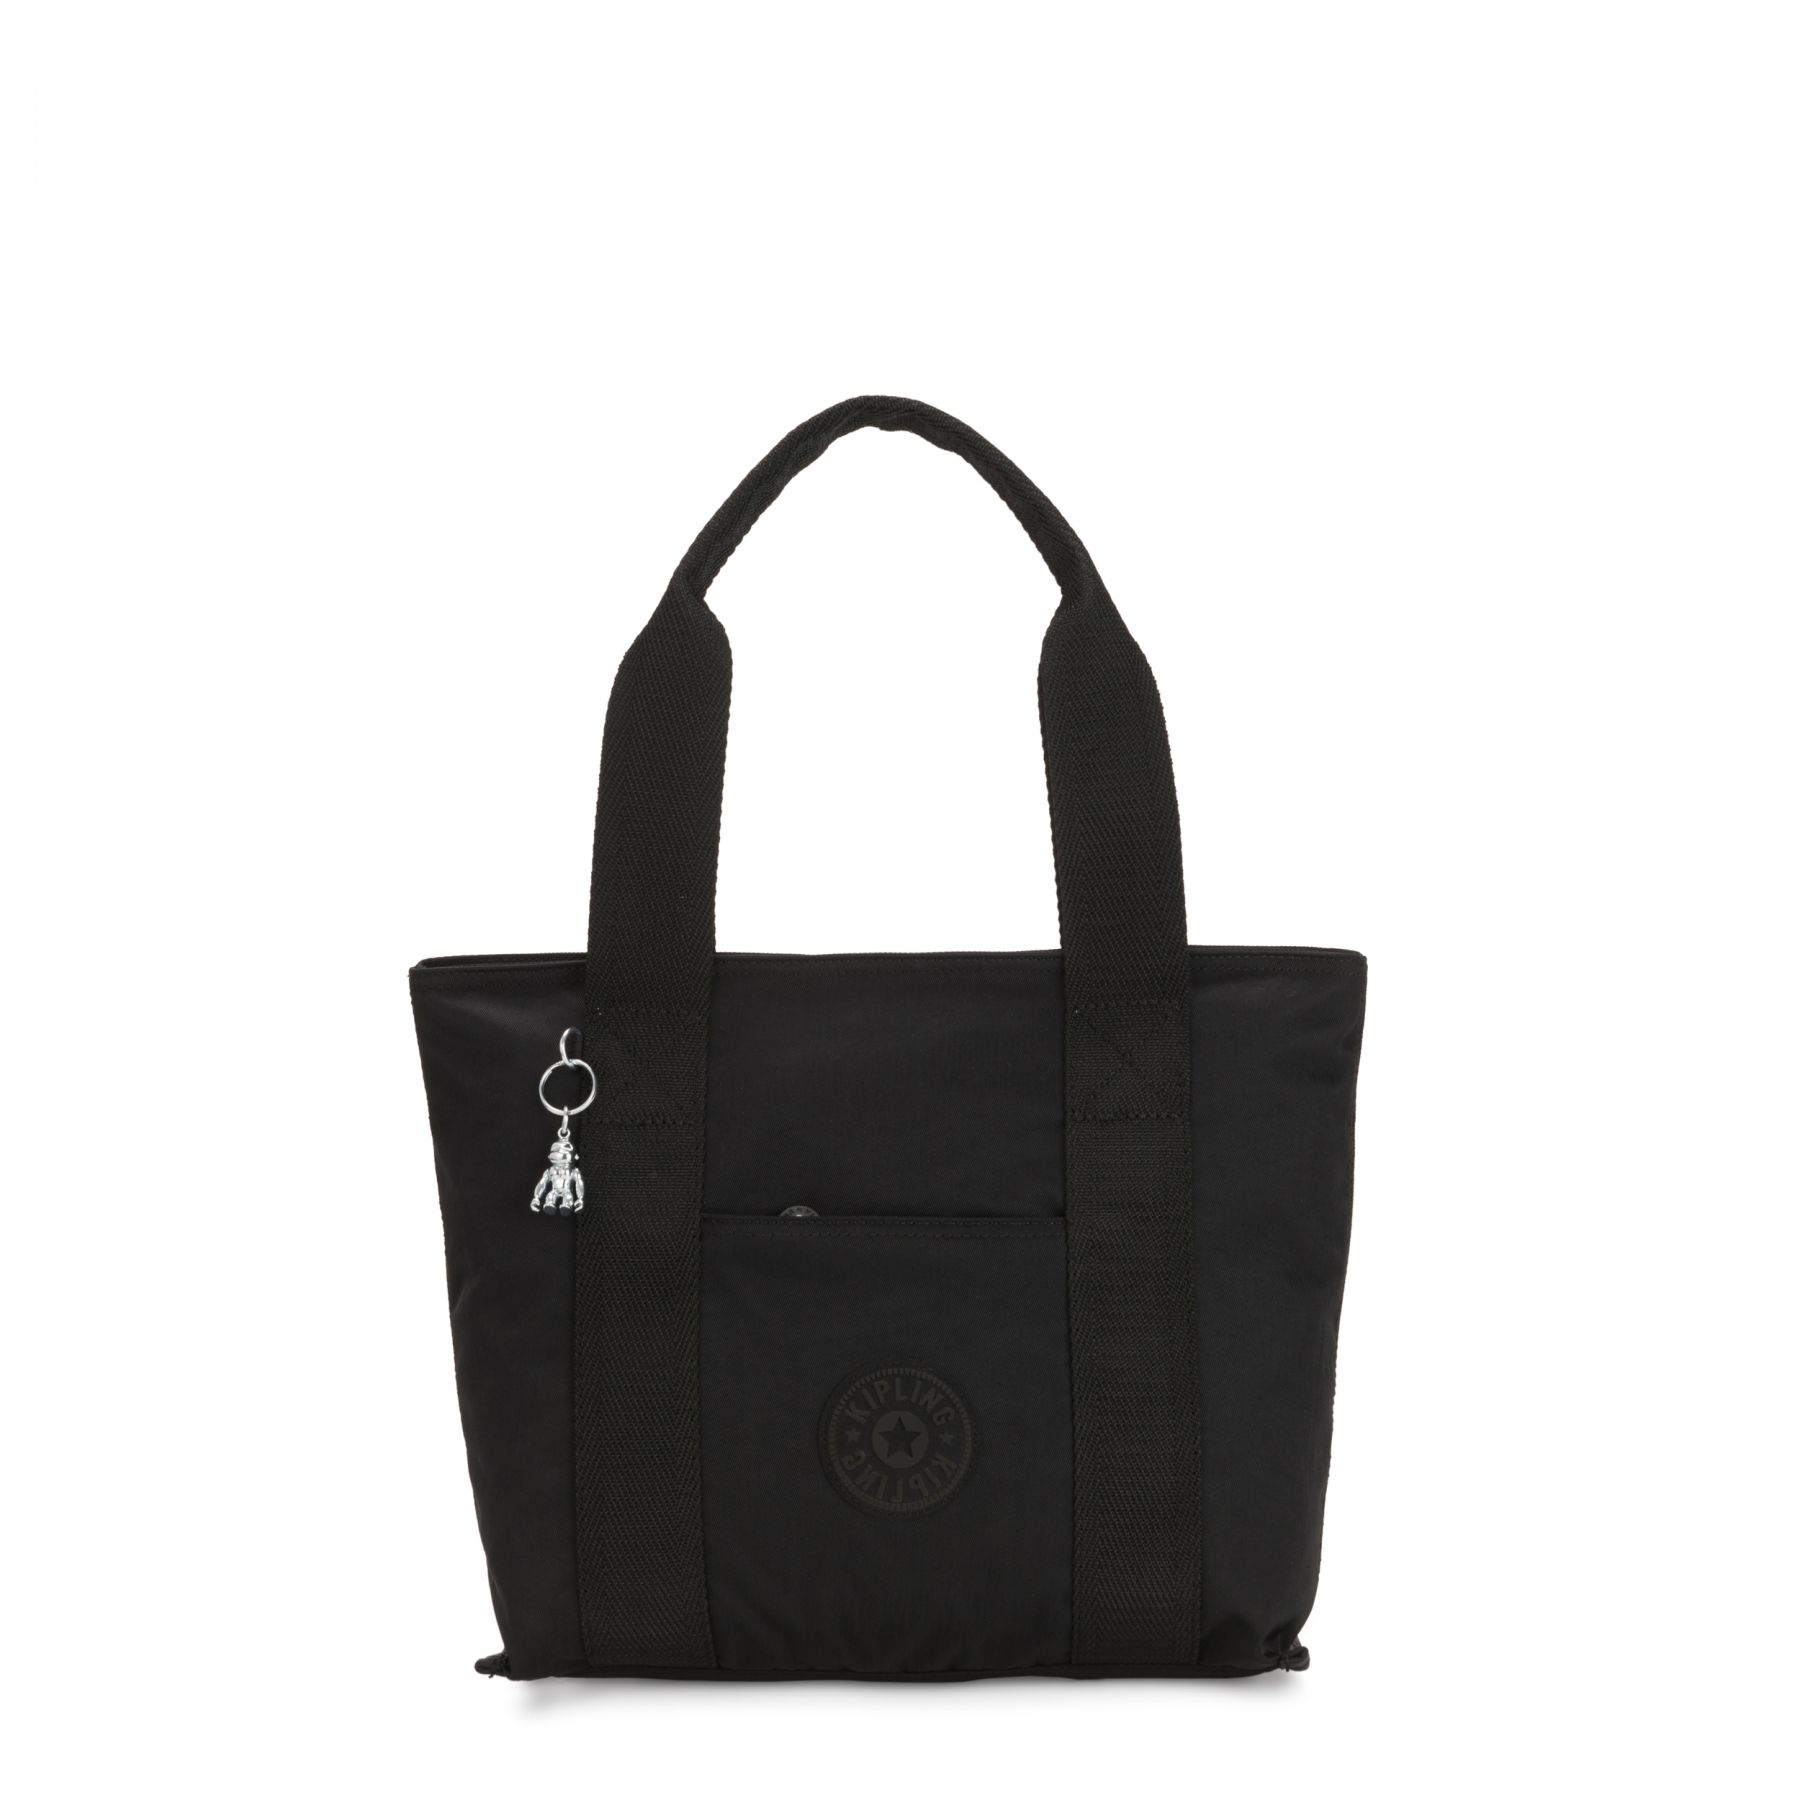 ERA S BAGS by Kipling - Front view